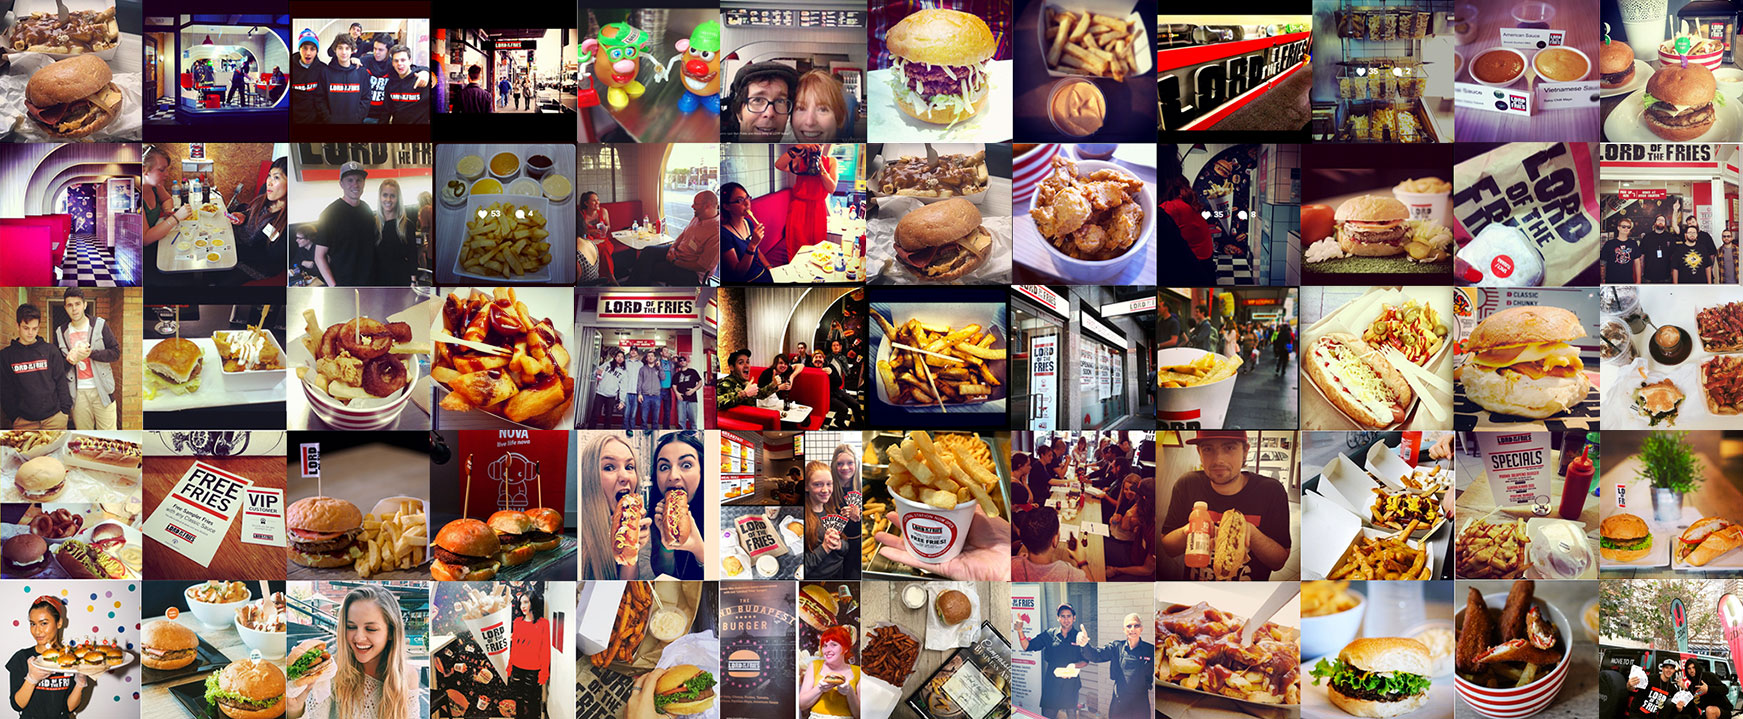 Lord of the fries - images from our happy customers